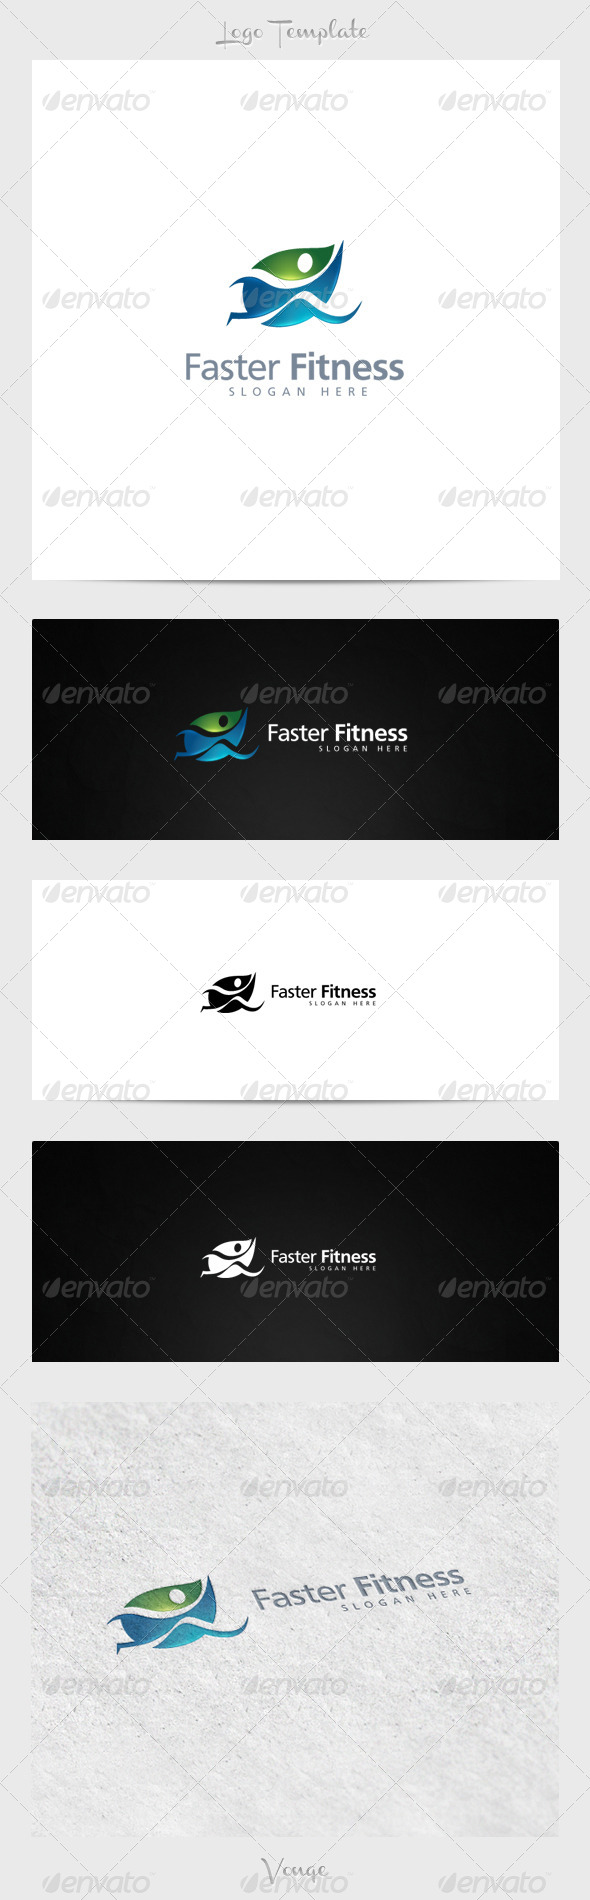 GraphicRiver Faster Fitness 3915770